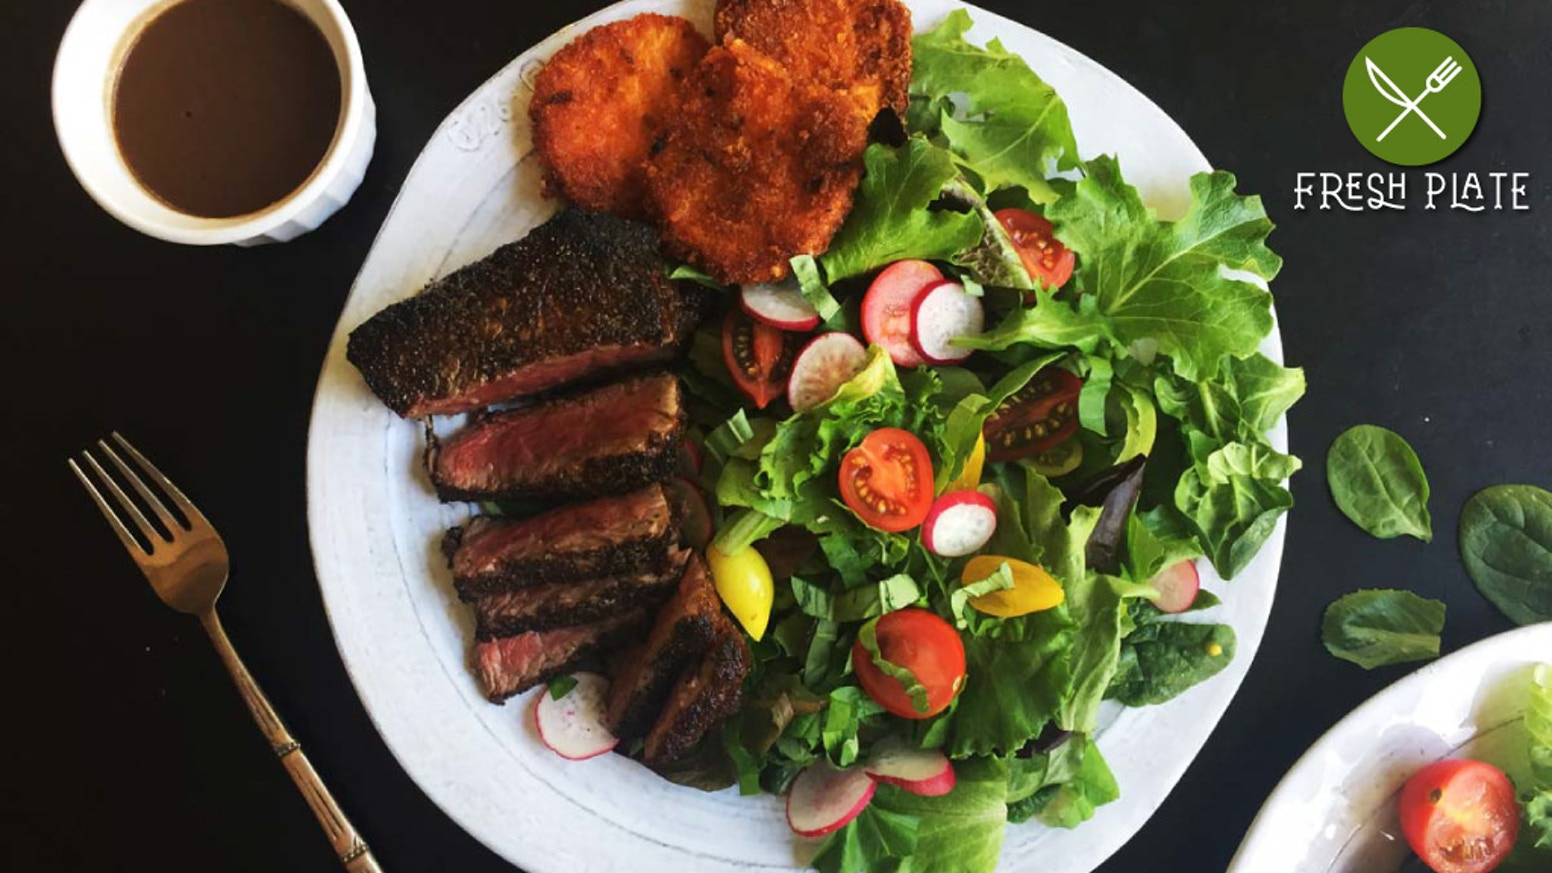 Fresh plate delish recipes local ingredients delivered by fresh plate delish recipes local ingredients delivered forumfinder Choice Image